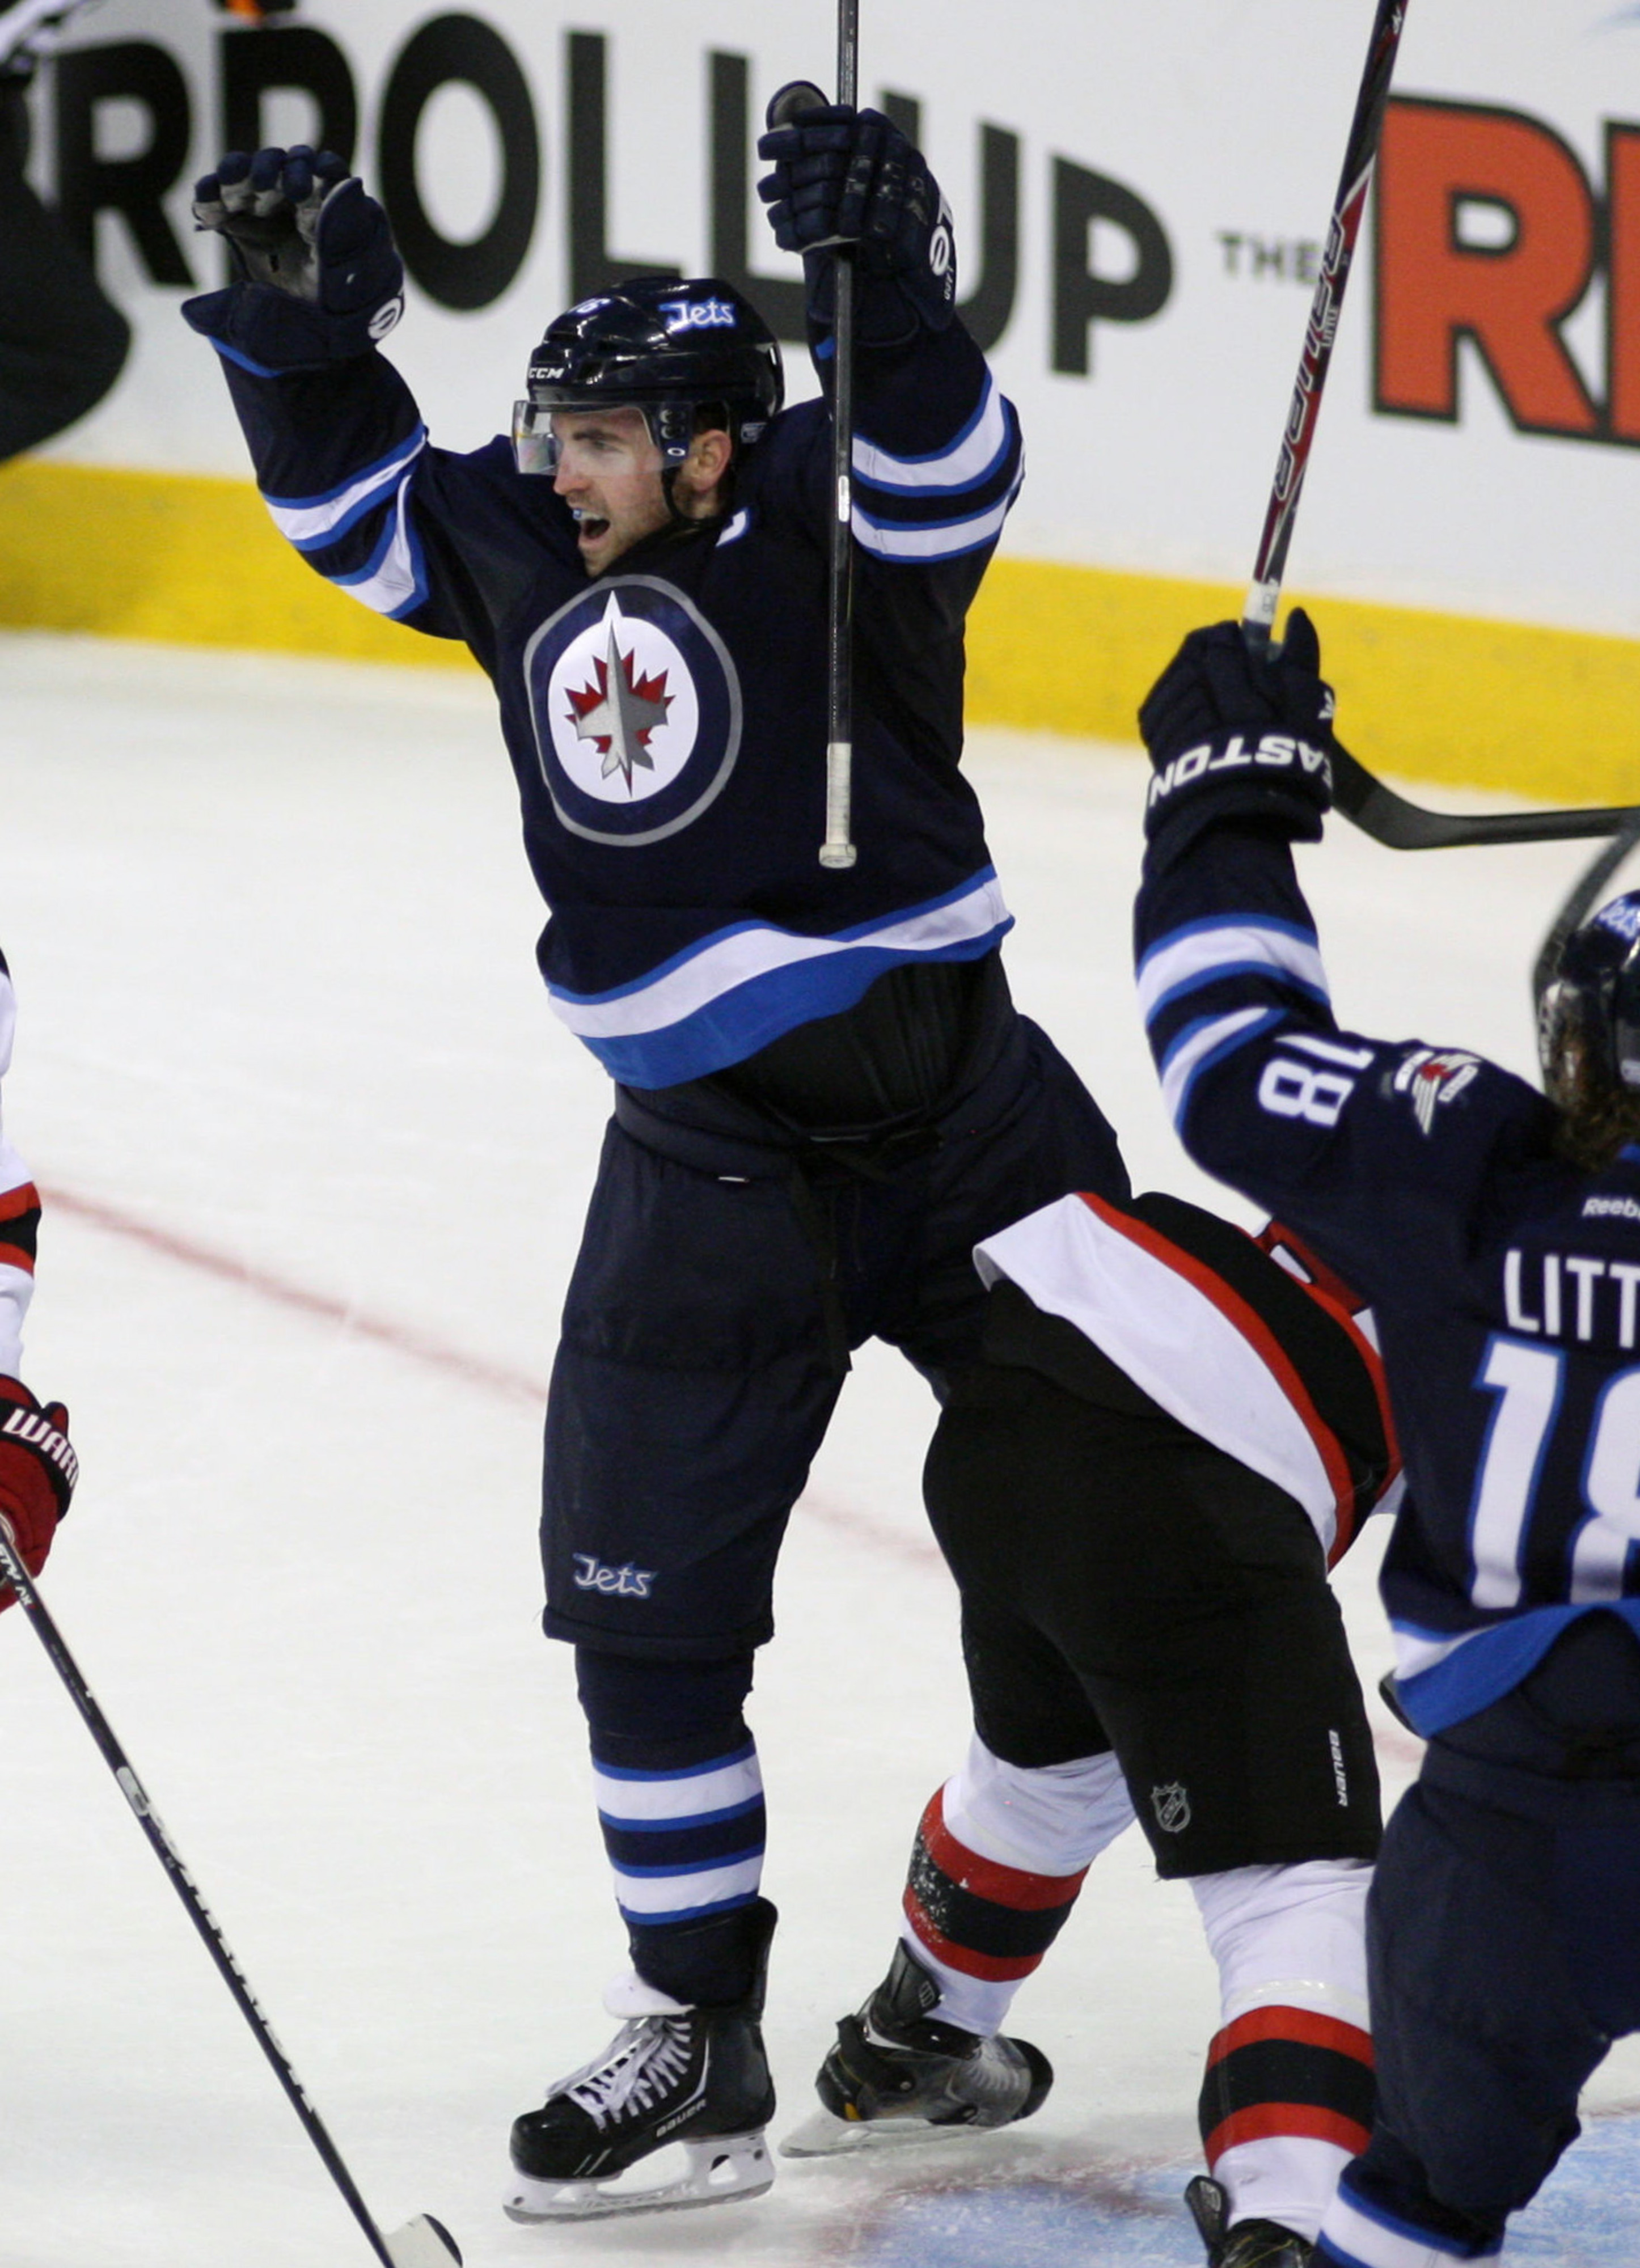 Winnipeg Captain Andrew Ladd celebrates his goal in New Jersey Thursday and a big contributor to the Jets recent 3-game winning streak.